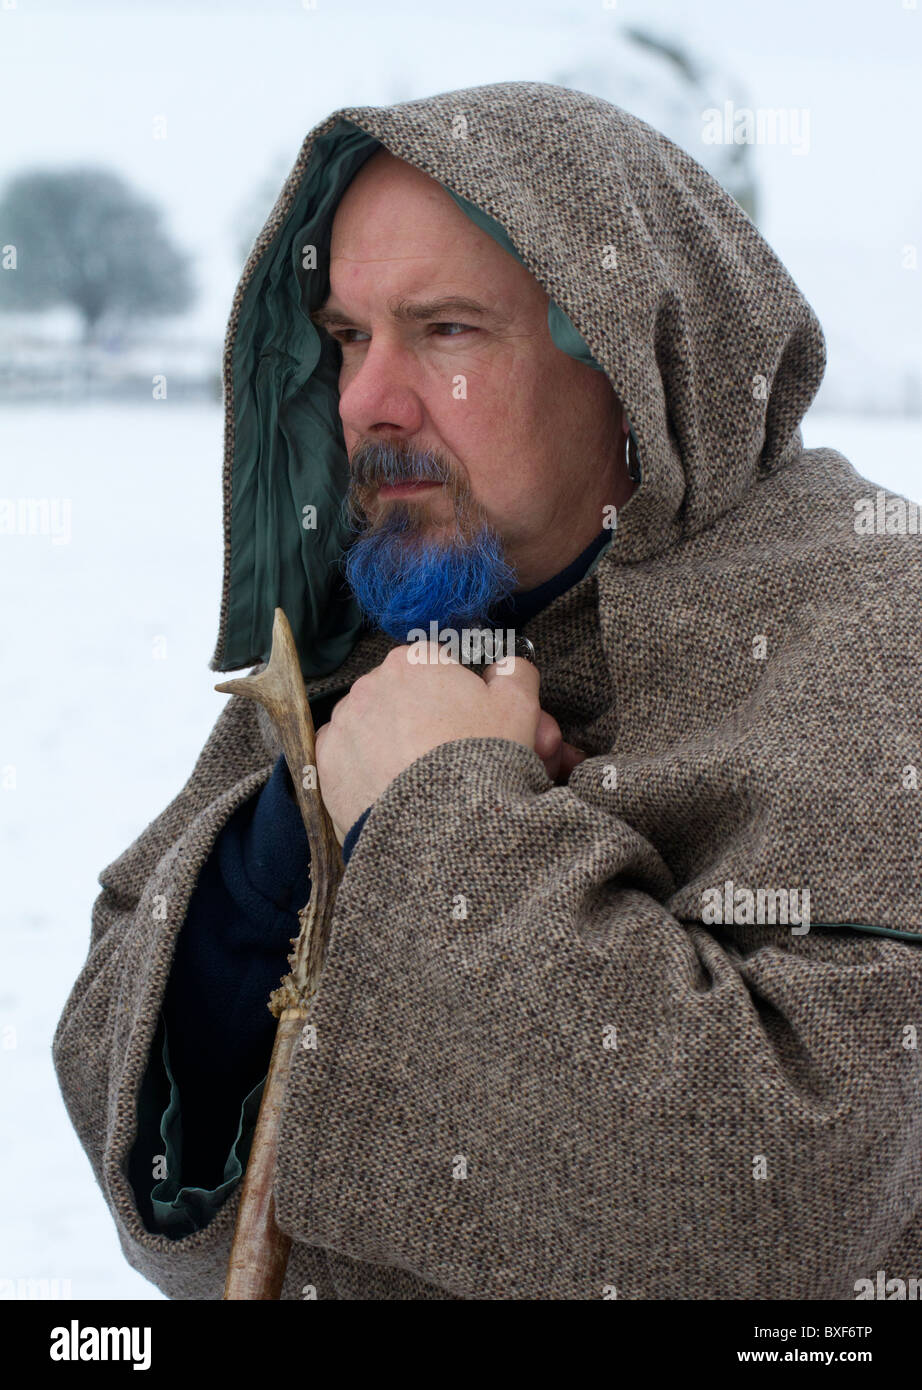 Druid celebrating the Winter Solstice in the snow at Avebury stone circle, Wiltshire, UK - Stock Image